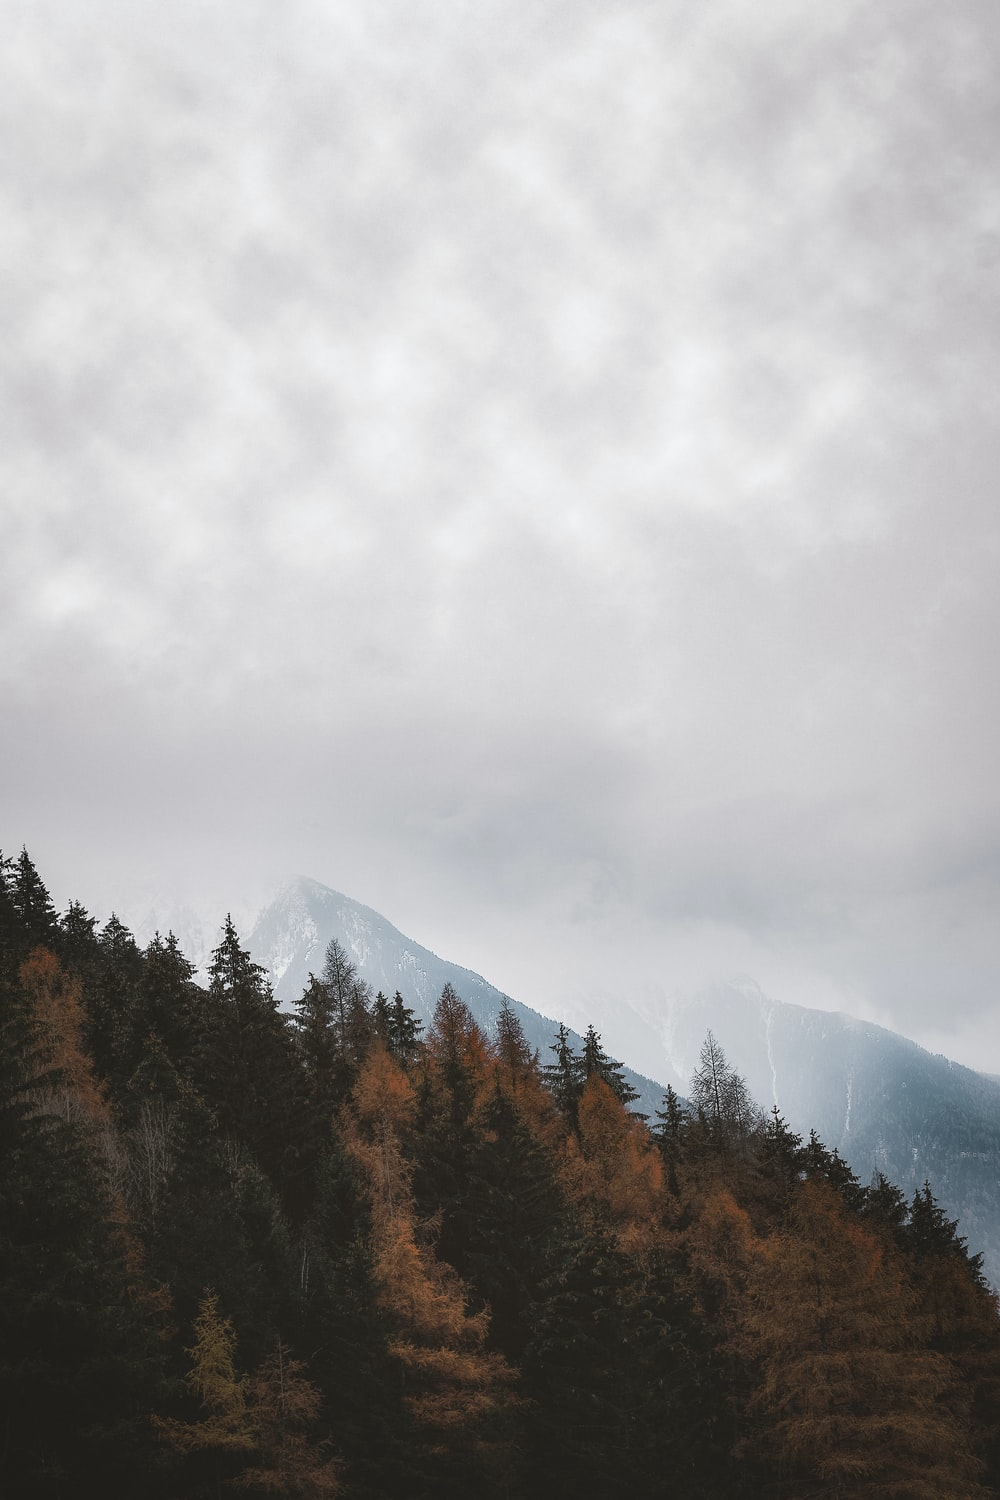 mountain covered with trees